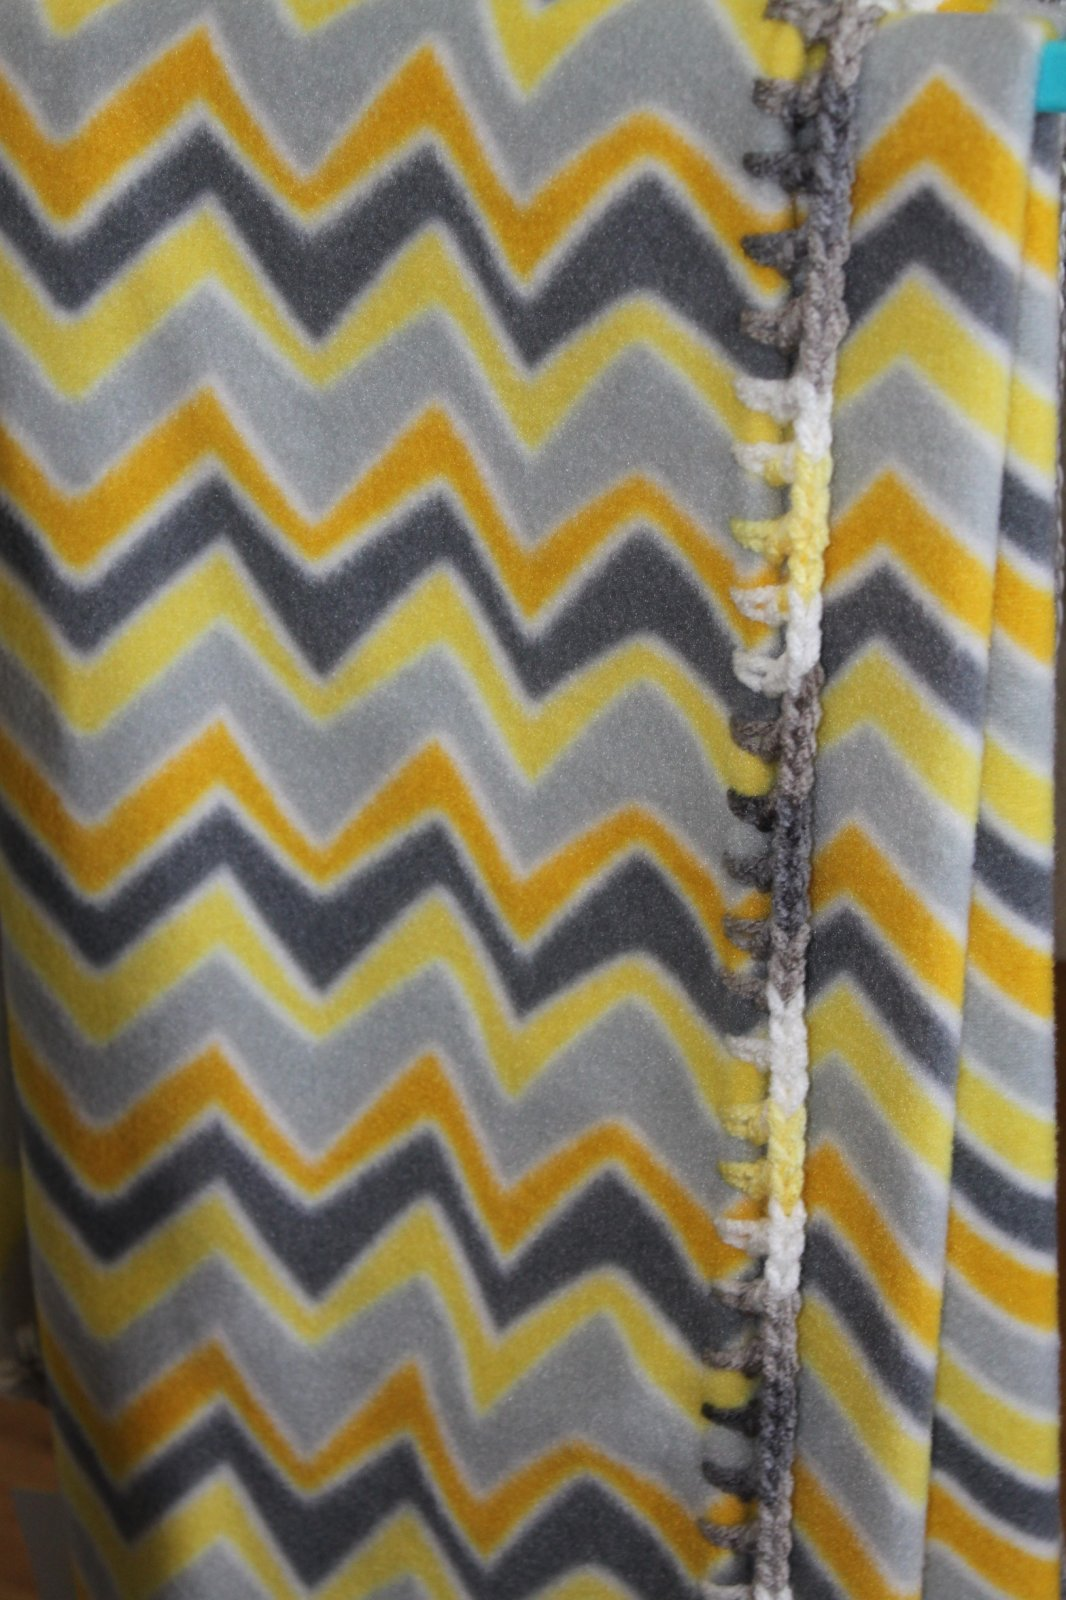 Yellow and Gray Chevron Blanket 28 x 38